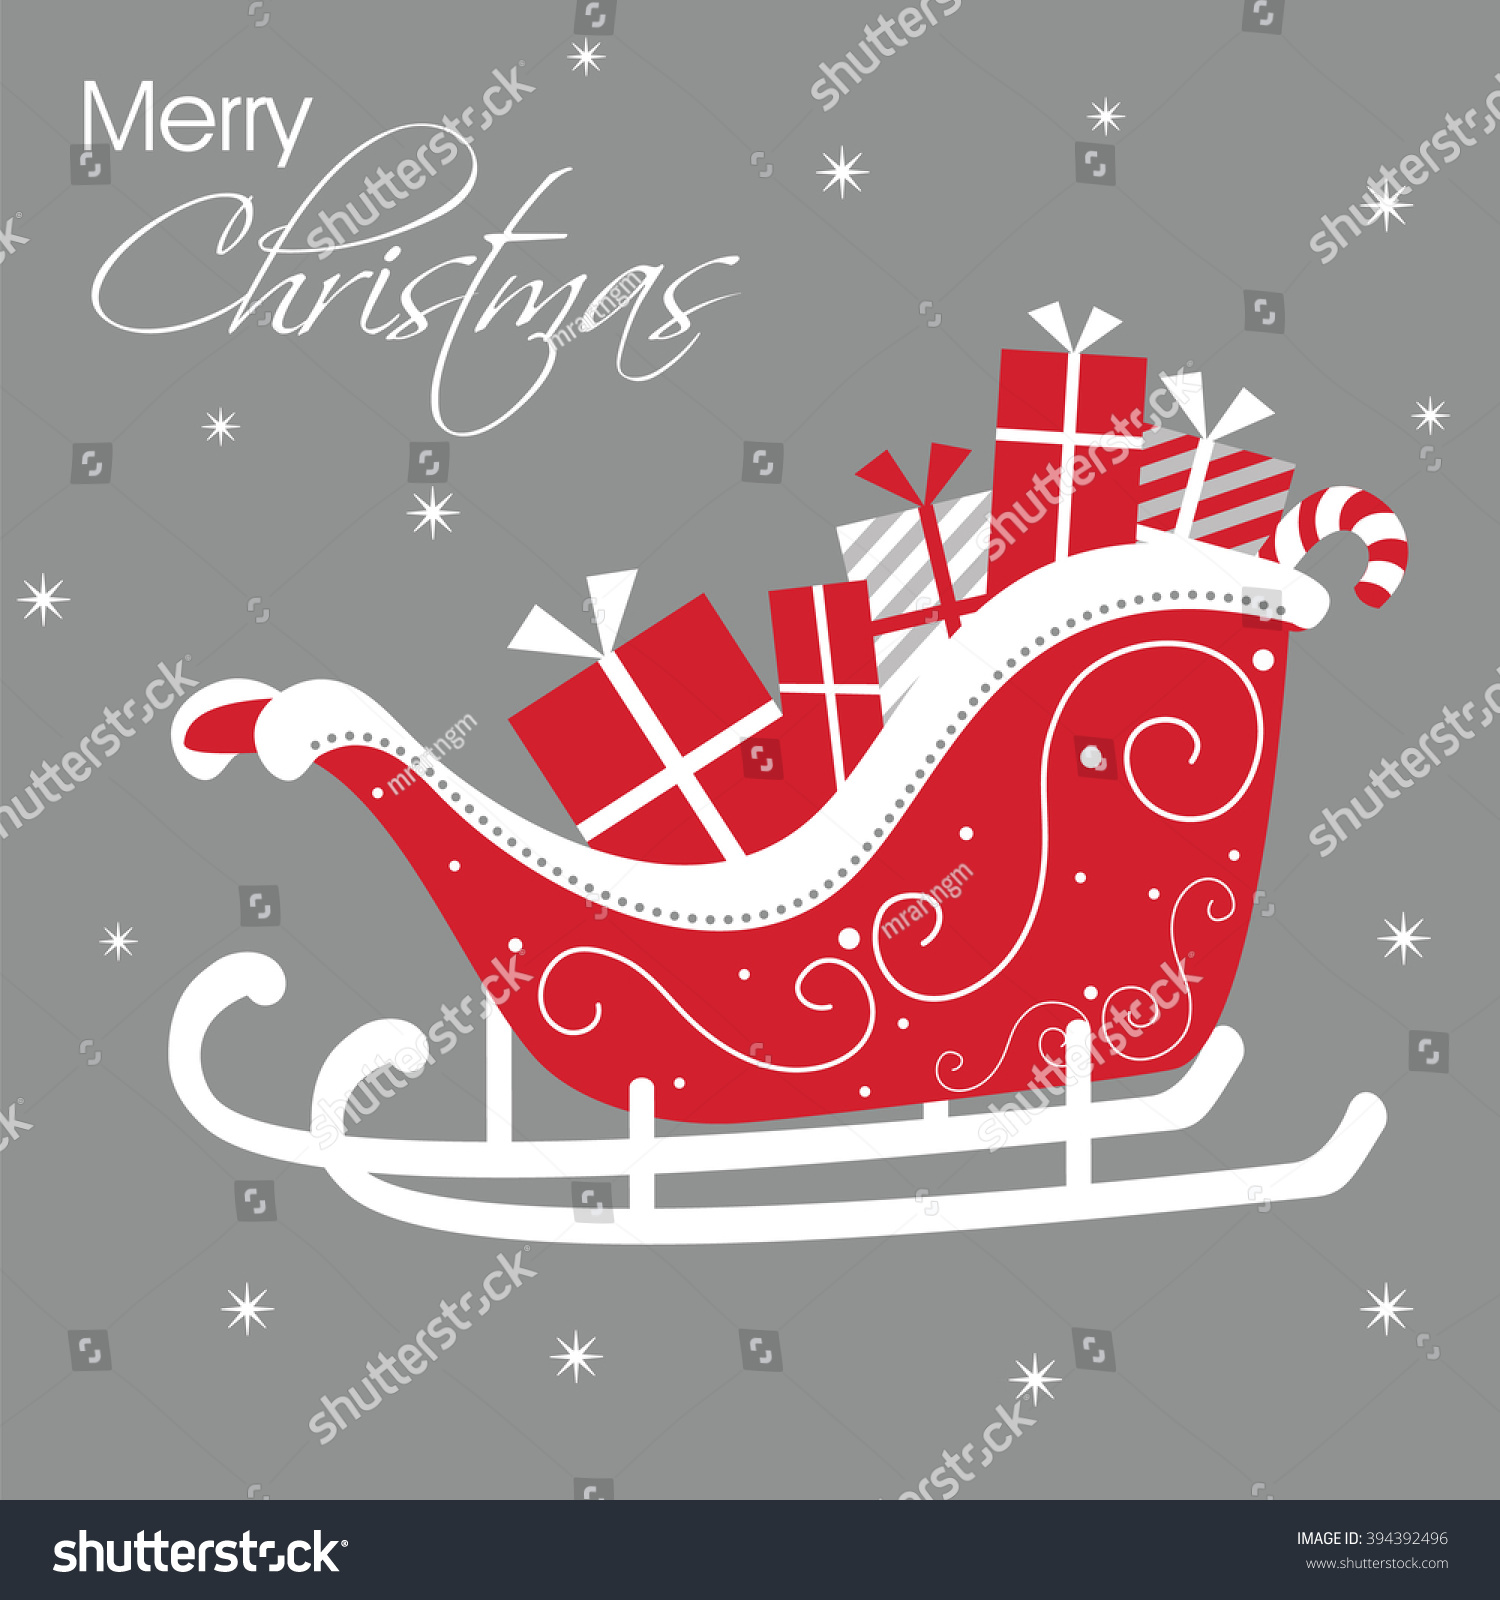 Luxury Christmas Card Santa Sleigh Design Stock Vector (Royalty Free ...